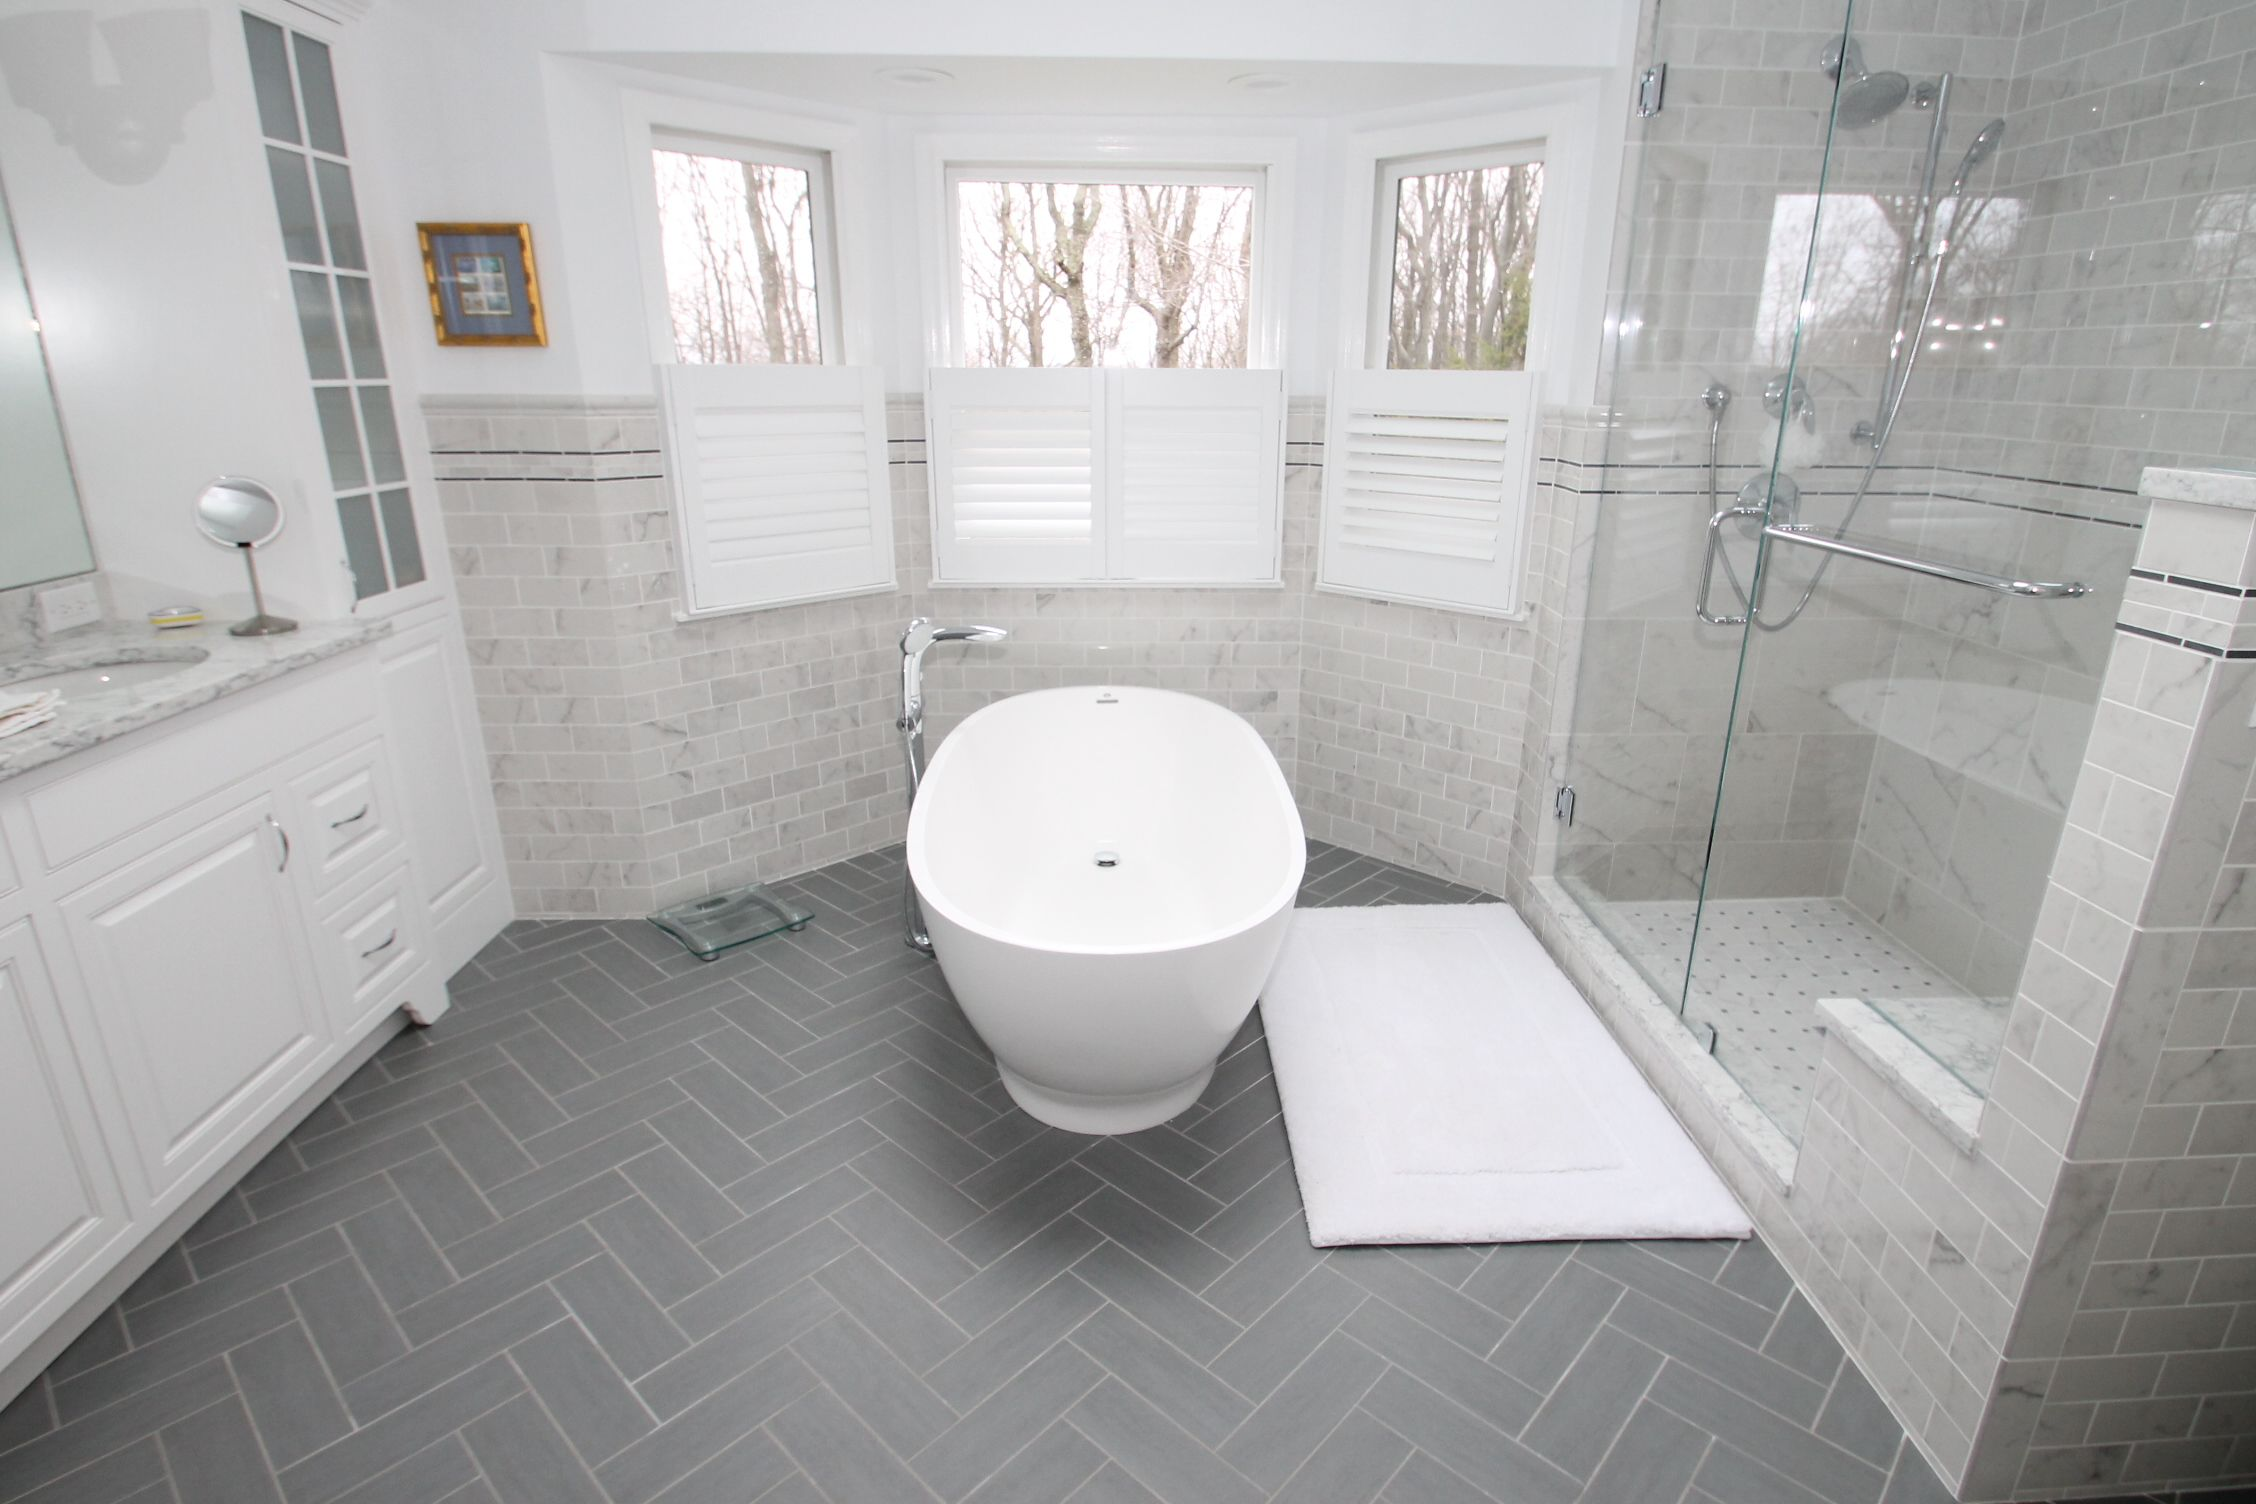 Design And Construction Work In Randolph By Nj Kitchens And Baths Modern Bathroom Design Lighting Small Apartment Bathroom Bathrooms Remodel